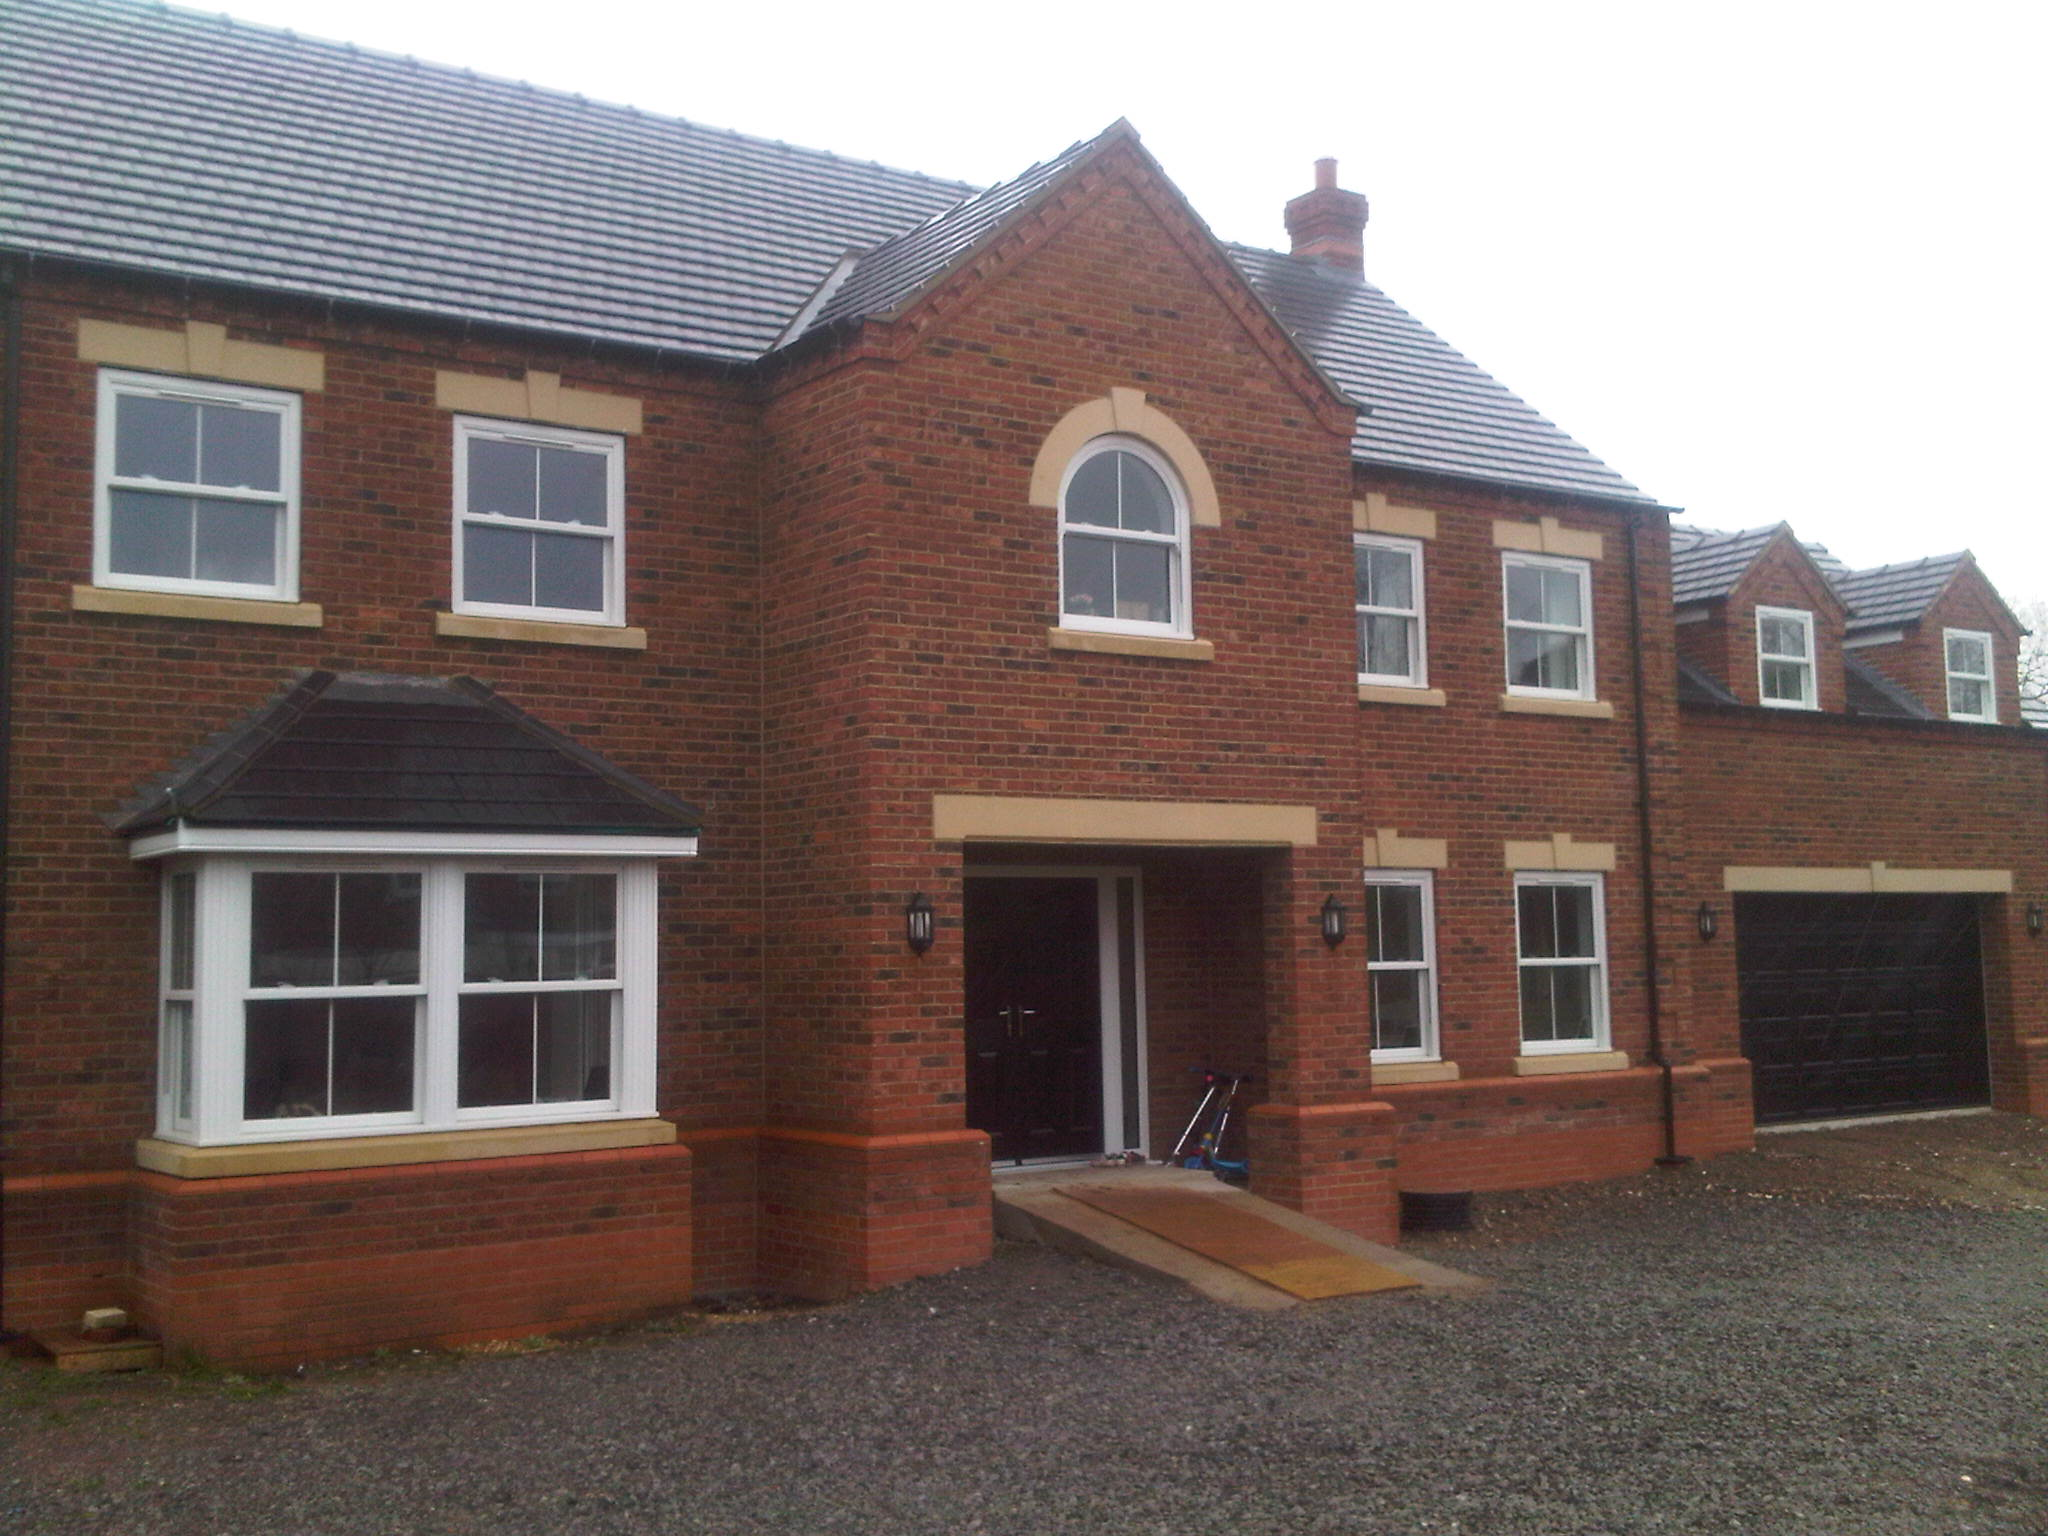 Architect services for new house in louth grimsby for Home design 6